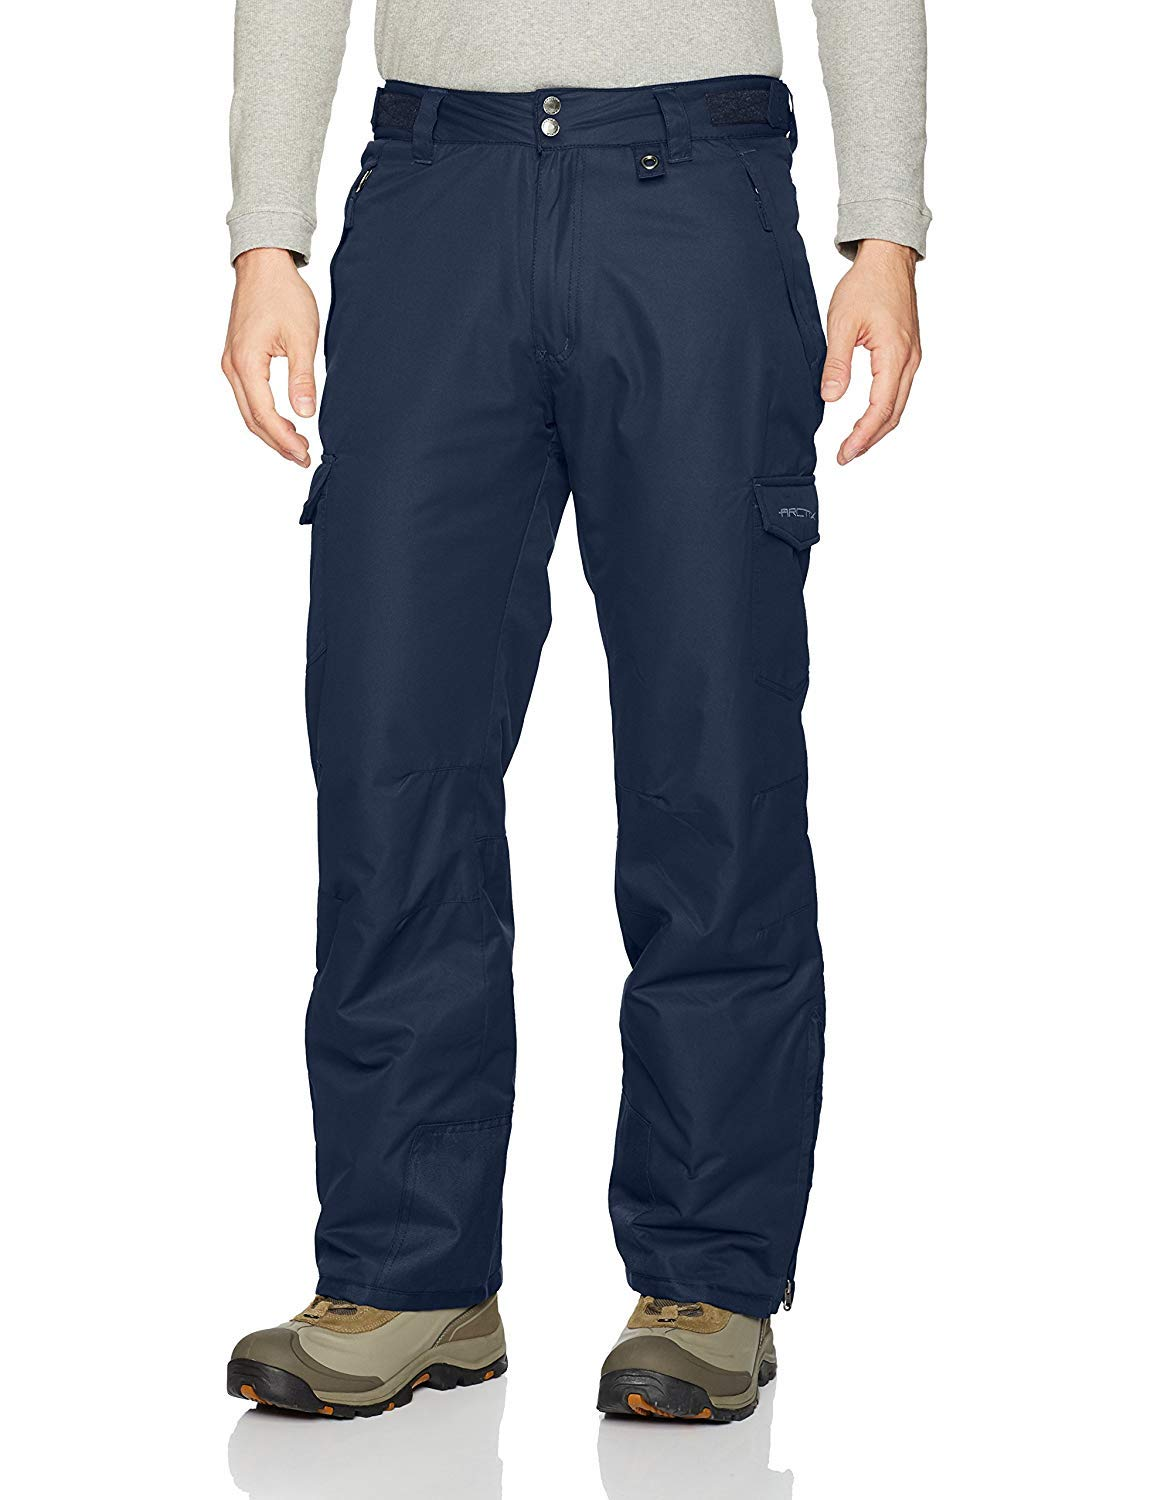 Arctix Men's Snow Sports Cargo Pant Tall 30'', Bluenight Navy, XX-Large (44-46W 30L) by Arctix